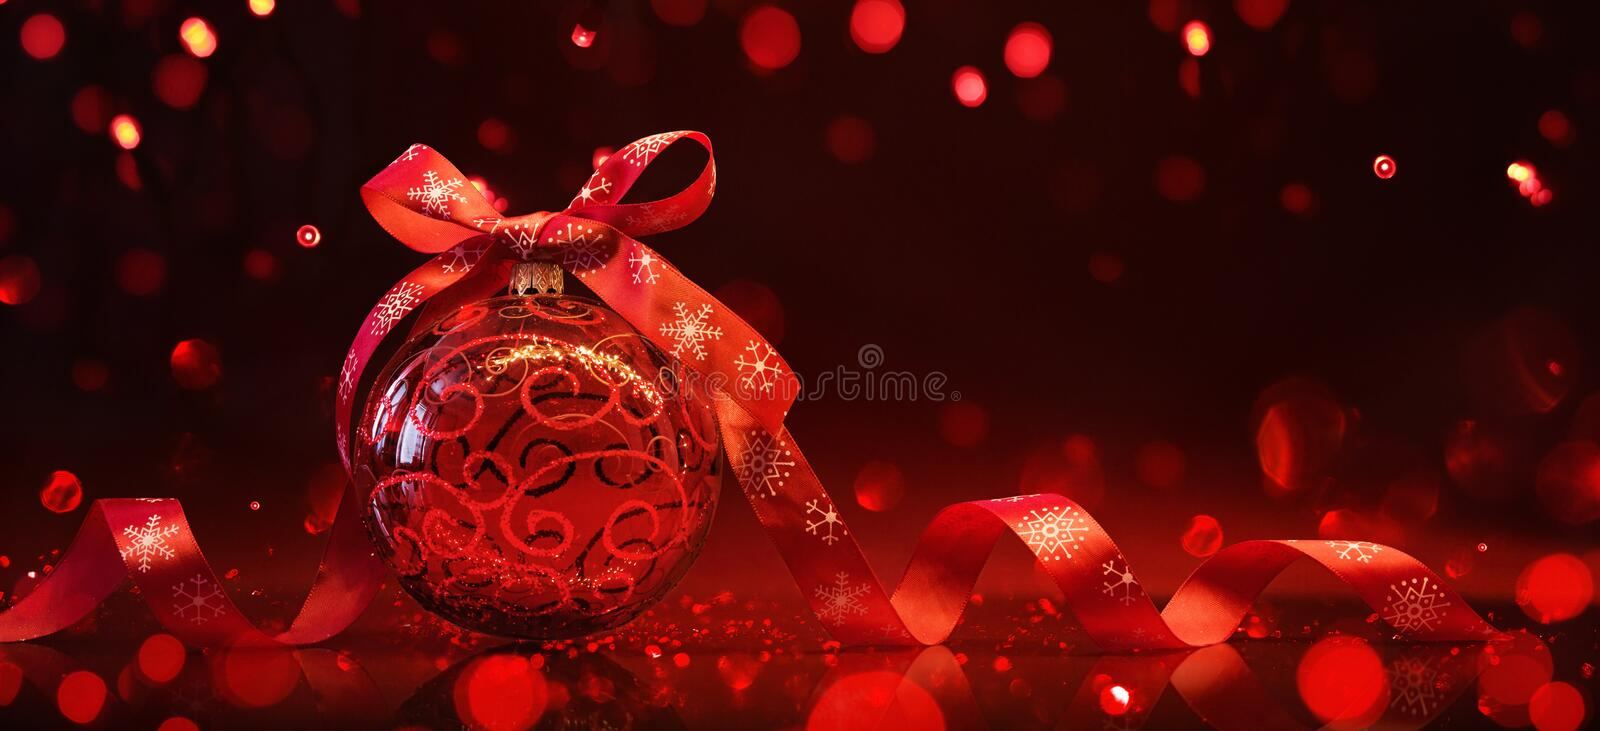 Red Christmas Ball With Reflection and Light Effects royalty free stock image